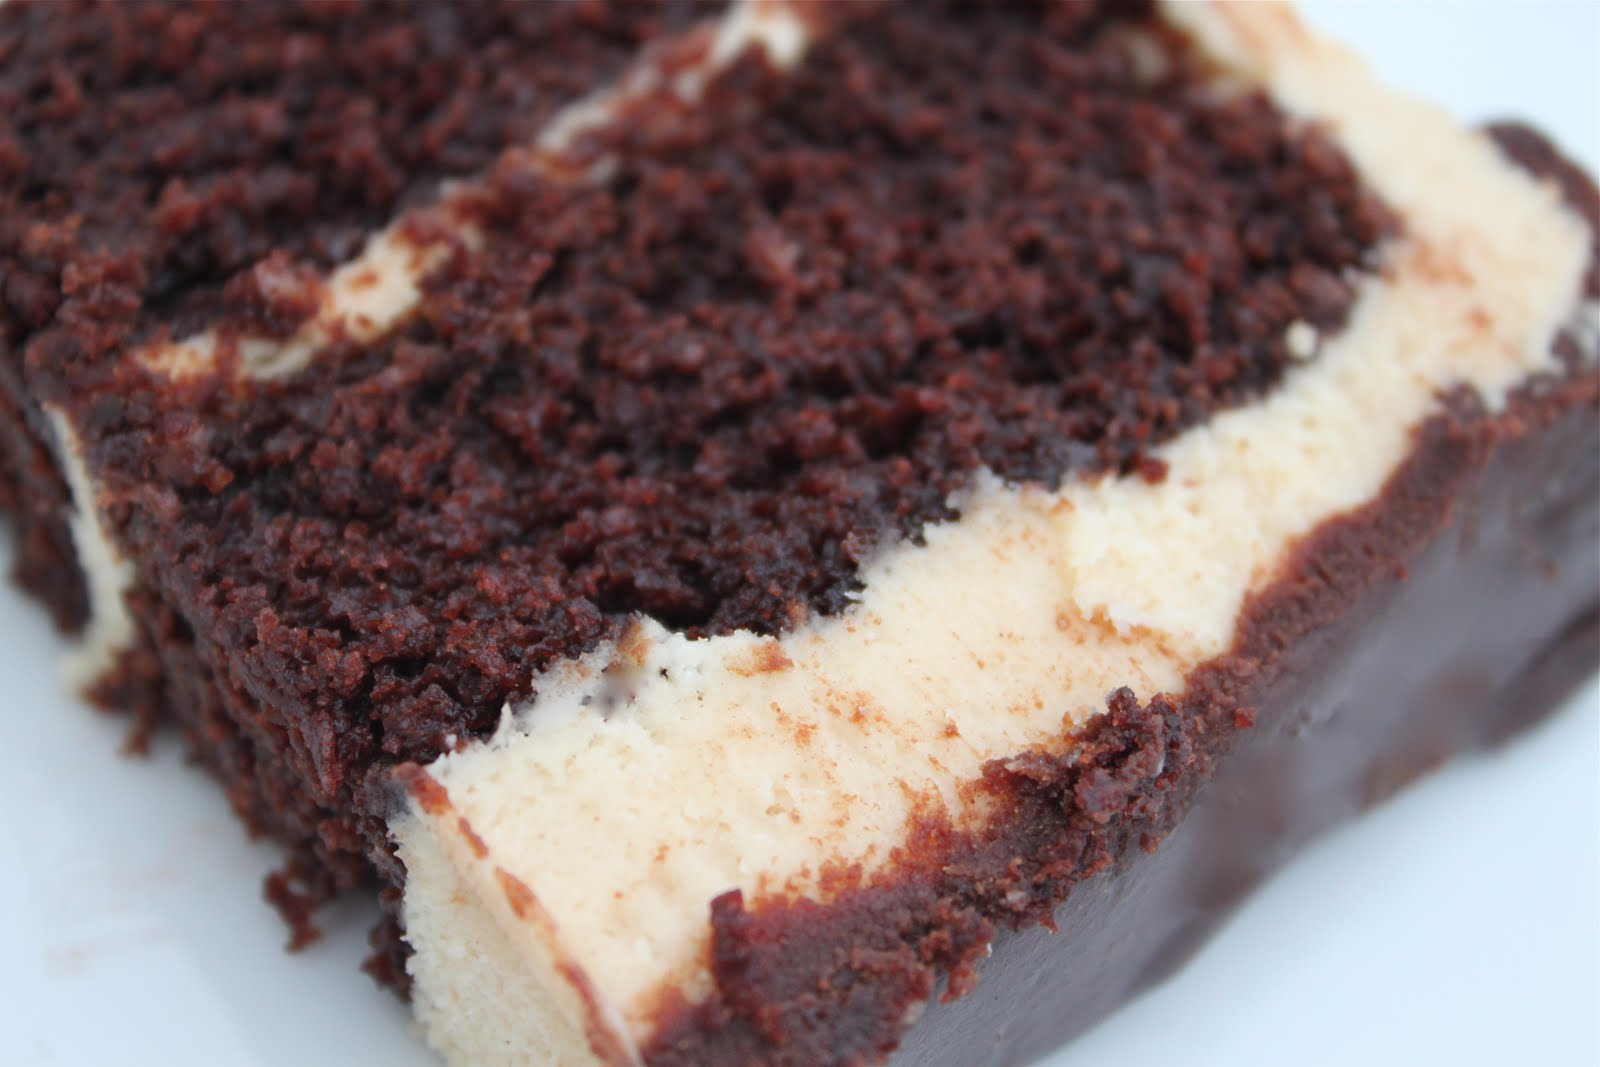 Sour Cream Chocolate Cake with Peanut Butter Frosting and Choco-Peanut ...